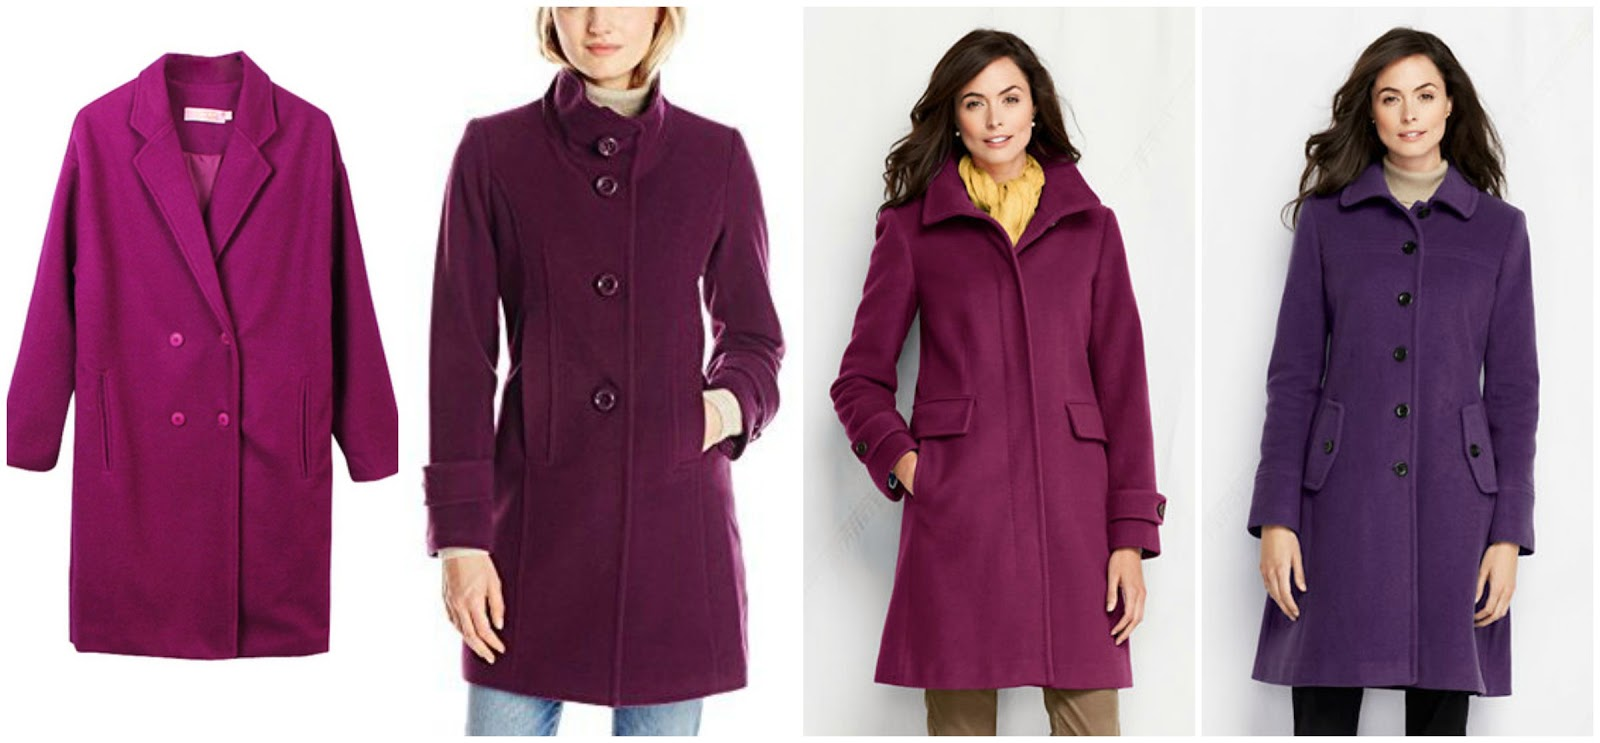 Wear It For Less: GIGI HADID: PURPLE COAT